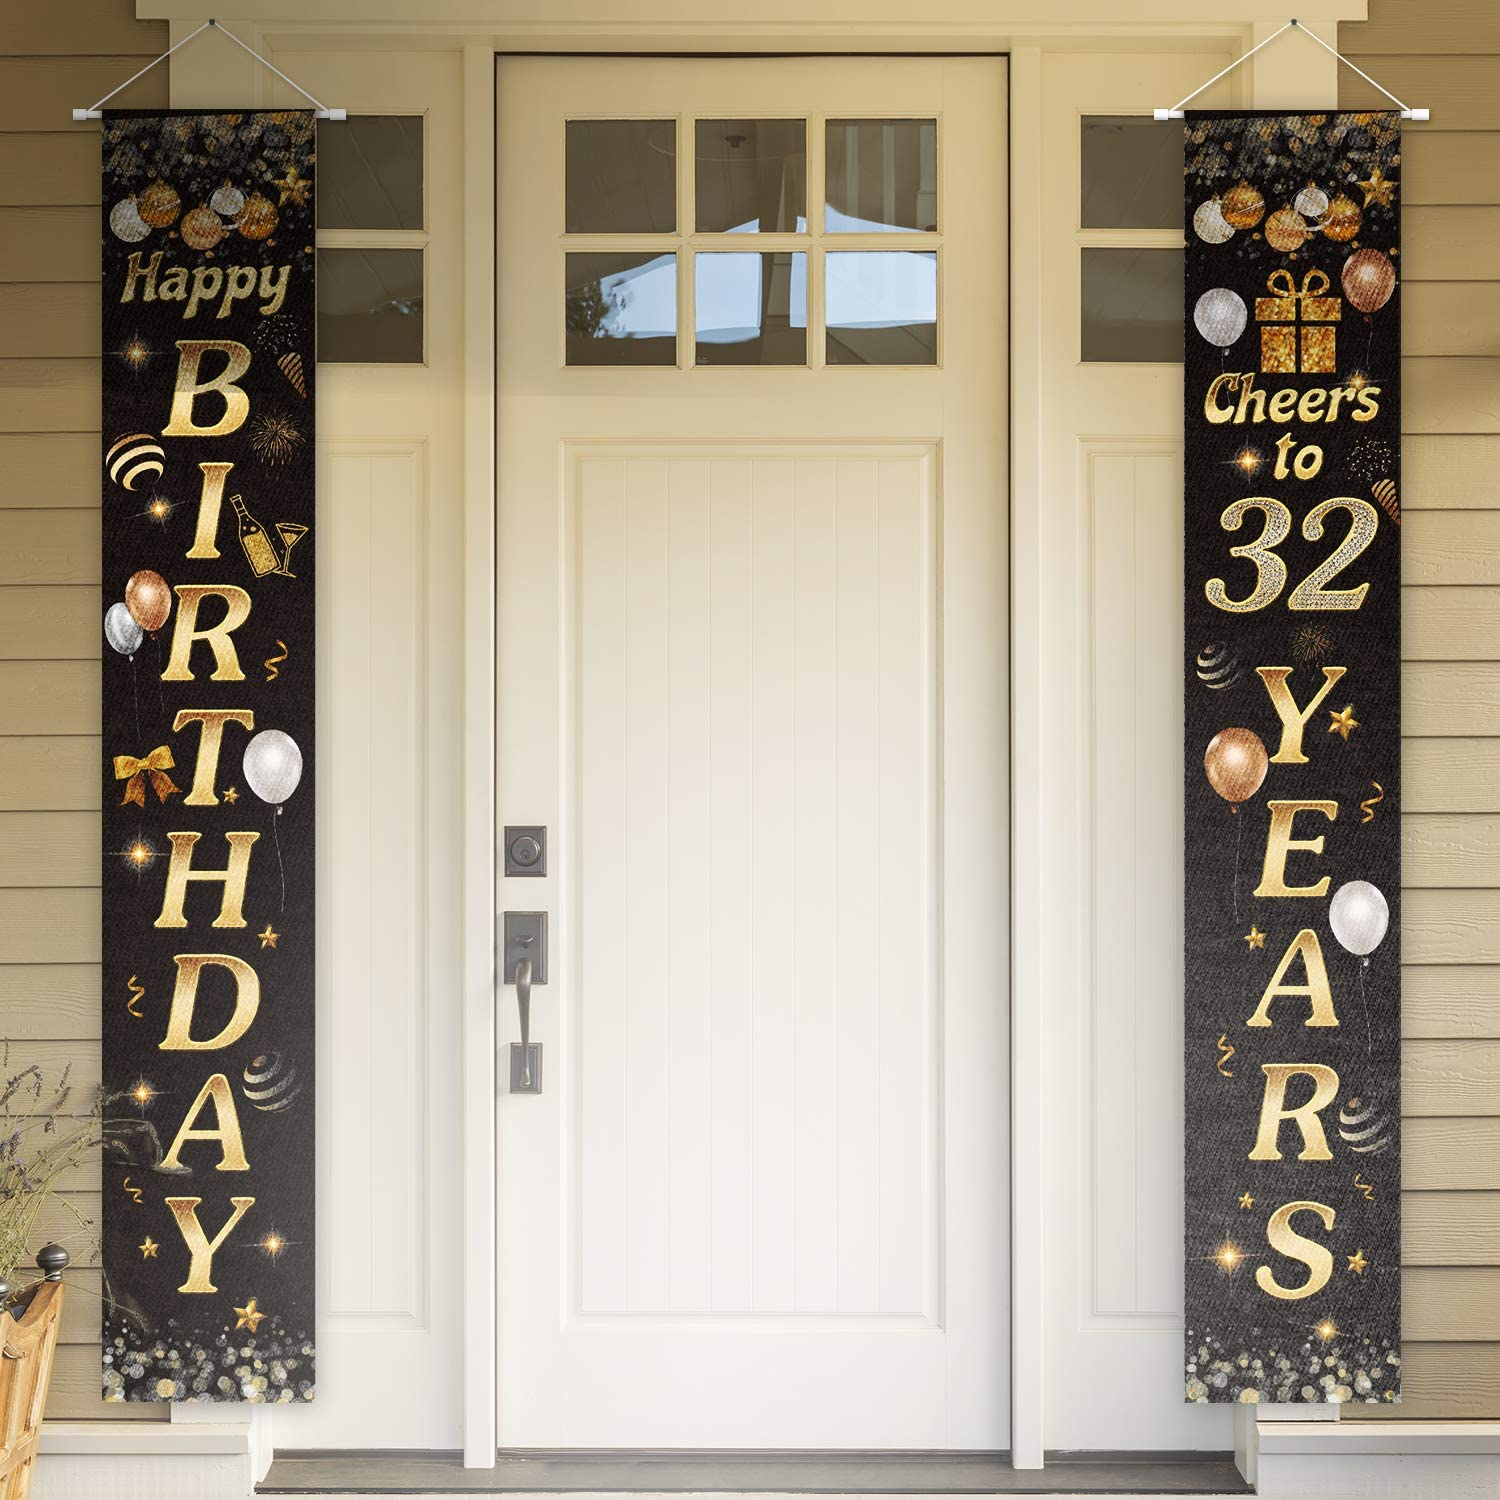 PAKBOOM Happy Birthday Cheers to 32 Years Black Gold Yard Sign Door Banner 32nd Birthday Decorations Party Supplies